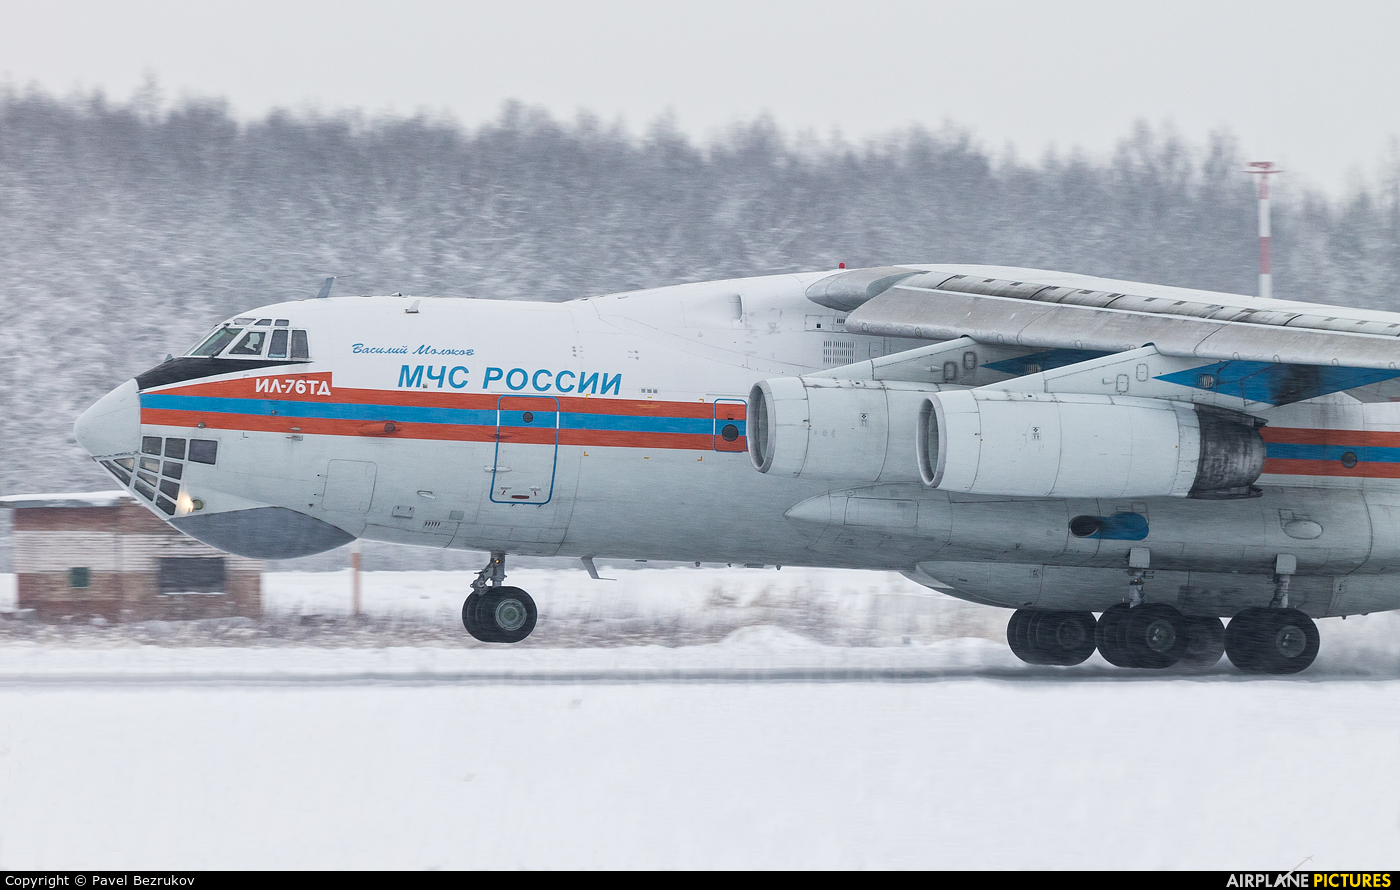 Russia - МЧС России EMERCOM RA-76363 aircraft at Ivanovo - South